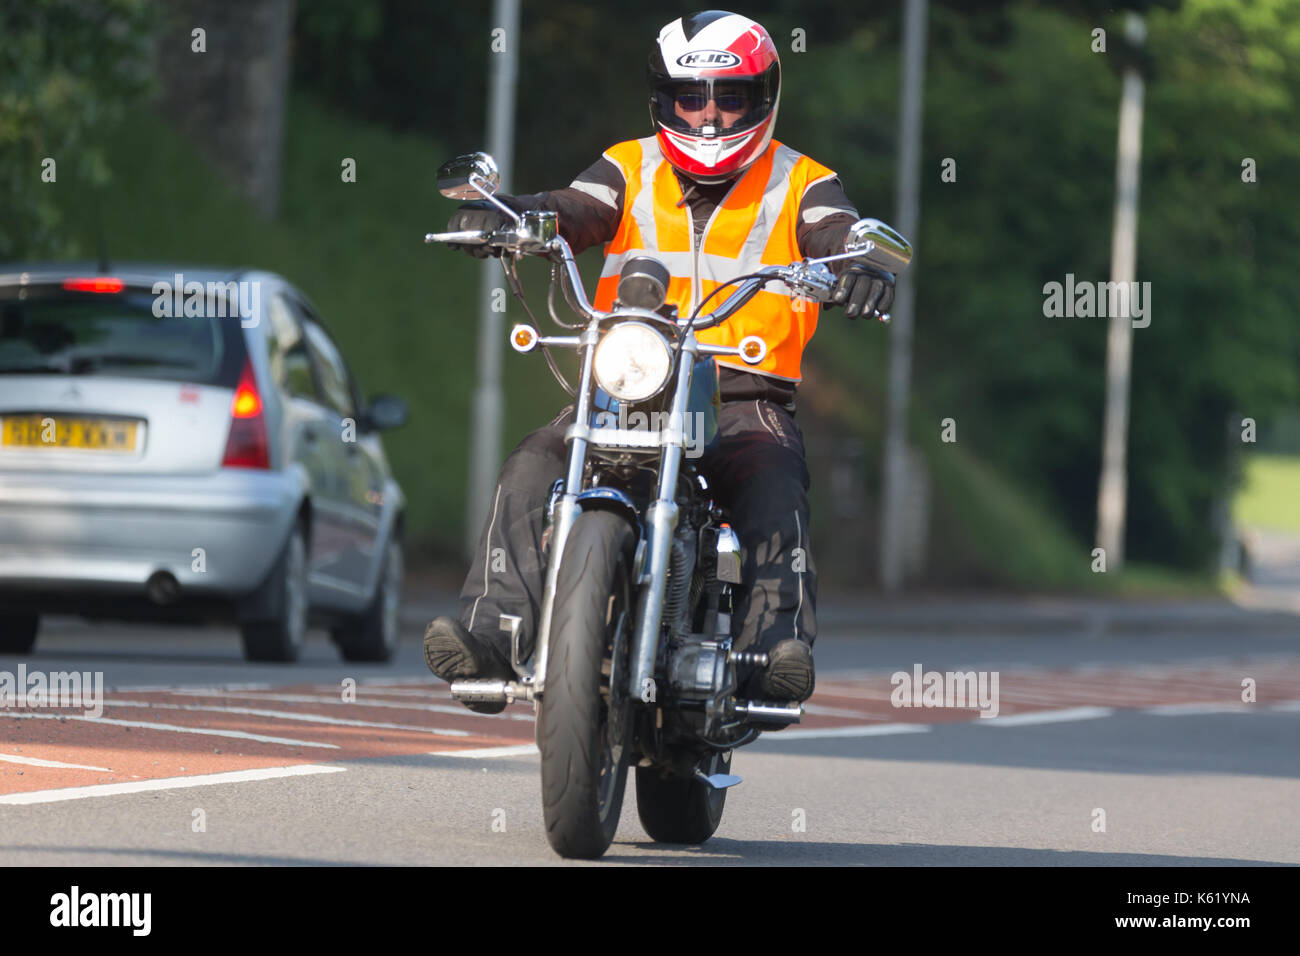 motorcyclists riding his motorbike along the road Stock Photo